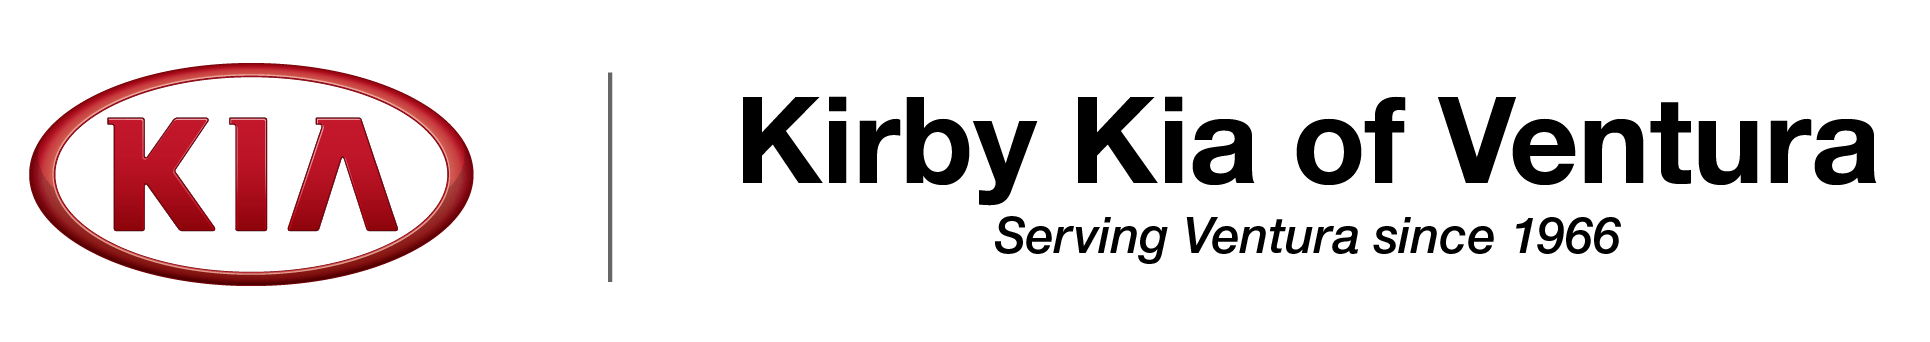 Kirby Kia Of Ventura logo